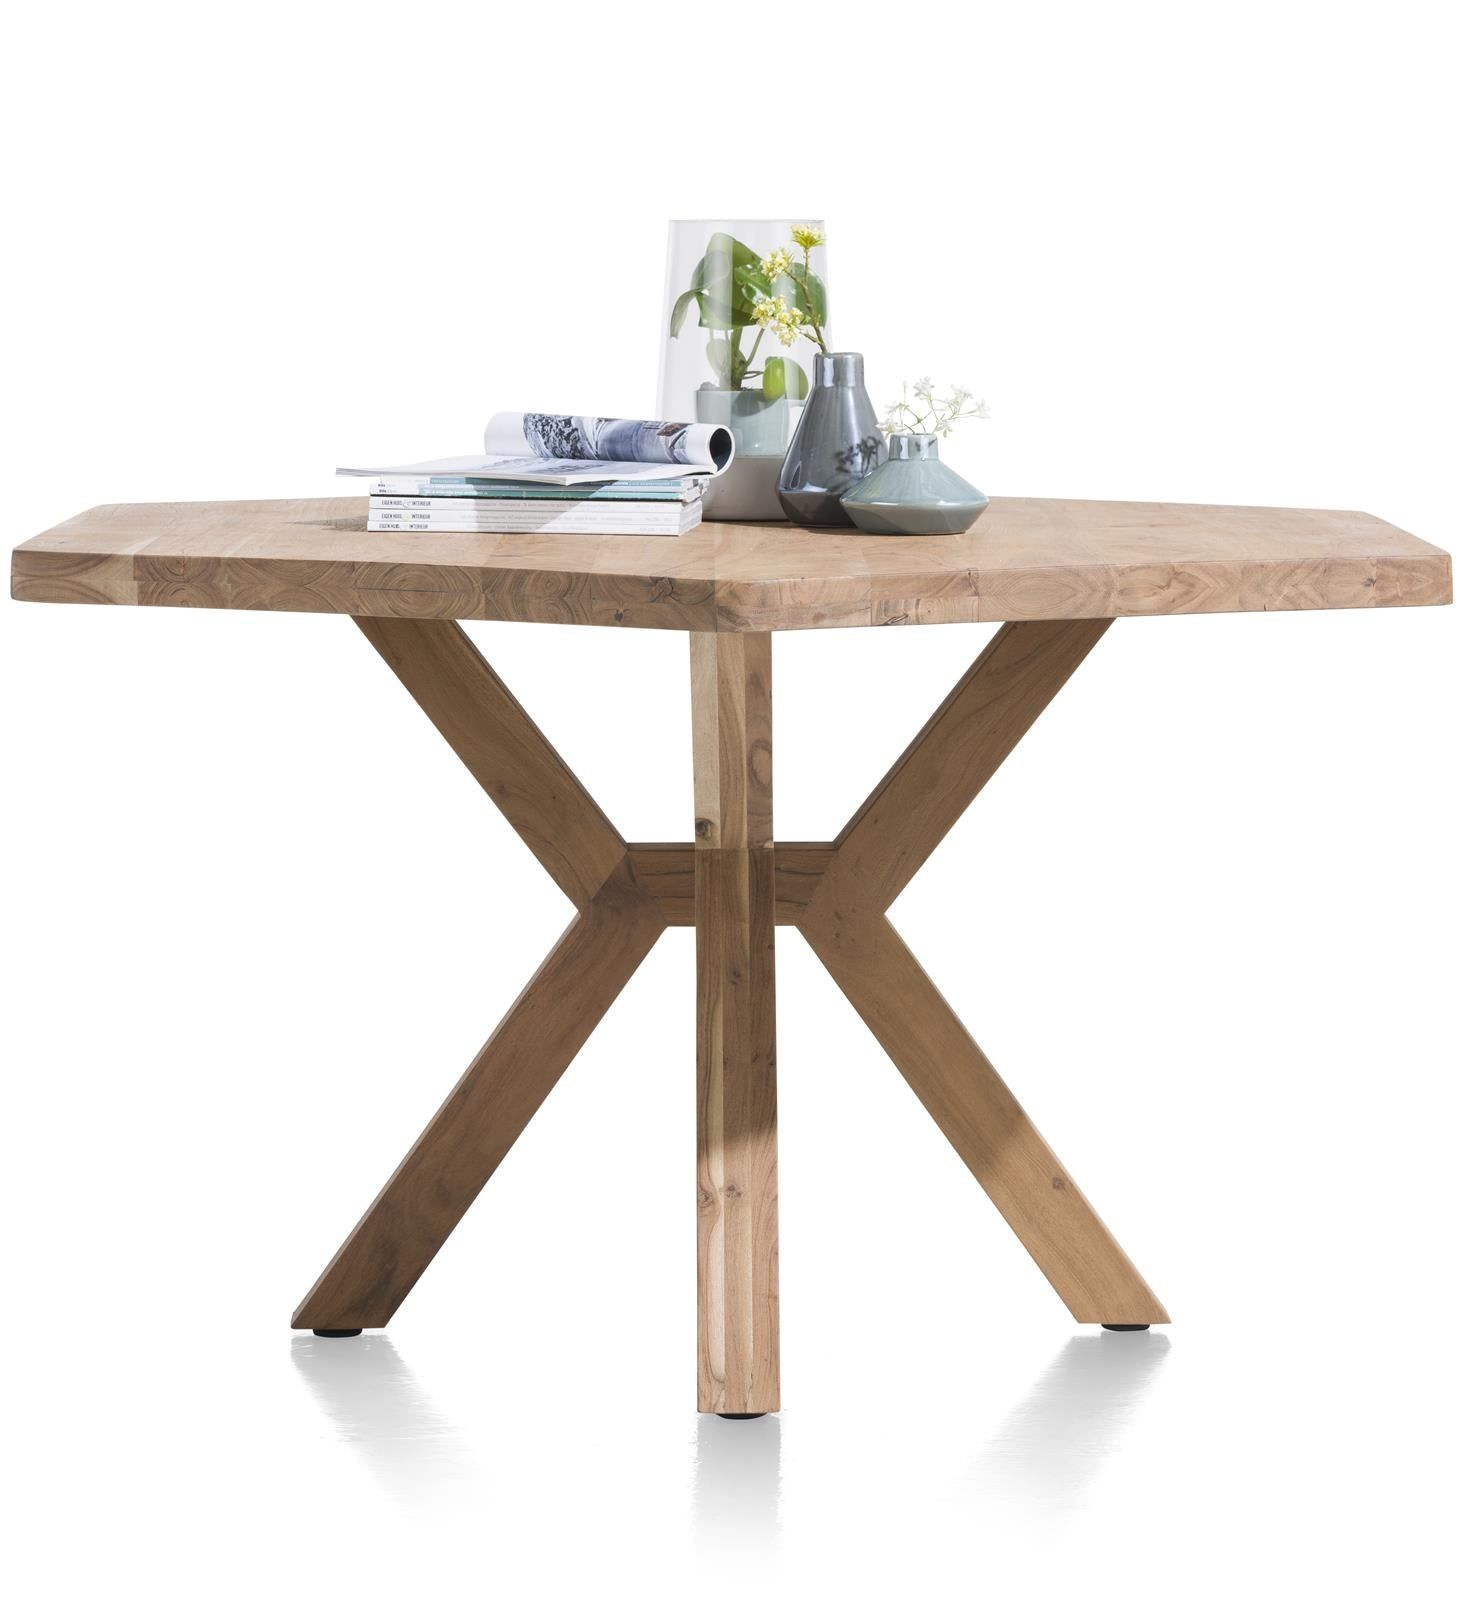 Habufa Quebec Dining tables-lowboard media unit-Against The Grain Furniture-[Furniture Village Detroit]-[Habufa Detroit]-[solid wood furniture]-Against The Grain Furniture